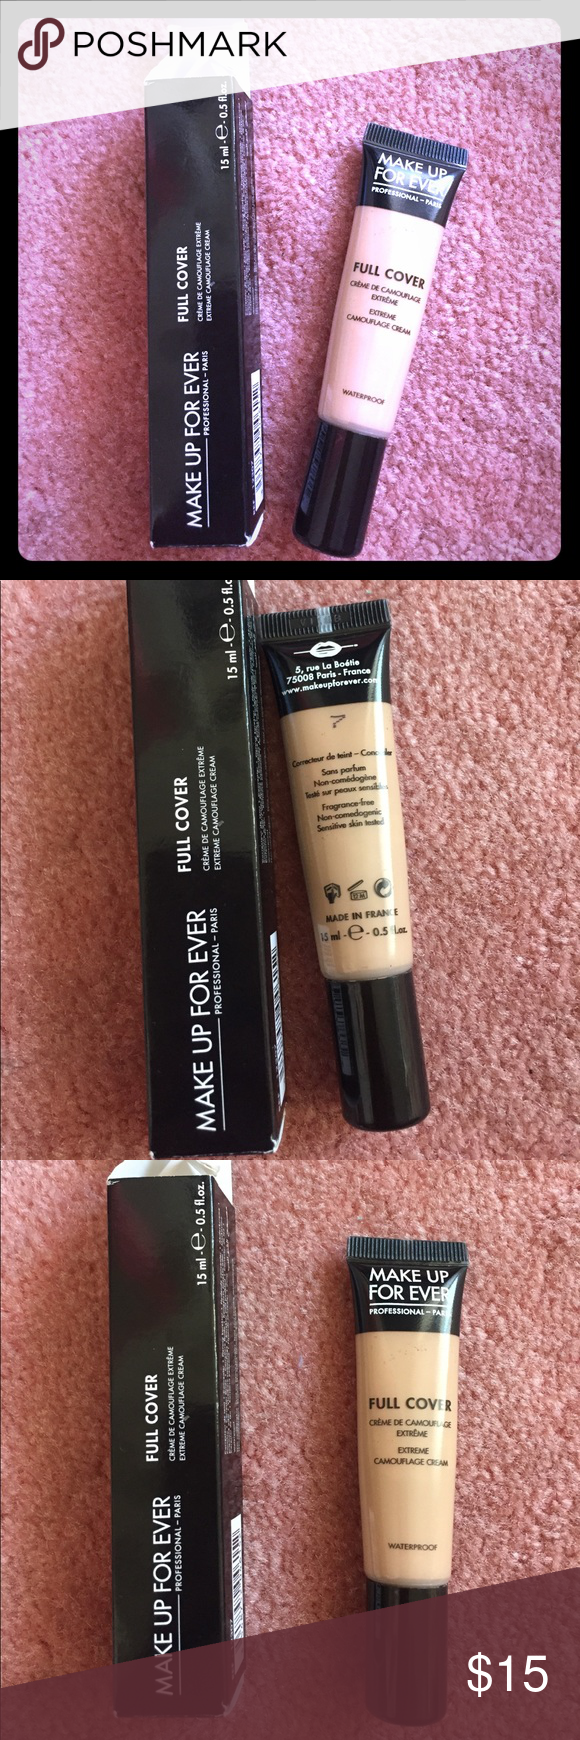 makeup forever concealer shade 7. used a handful of time